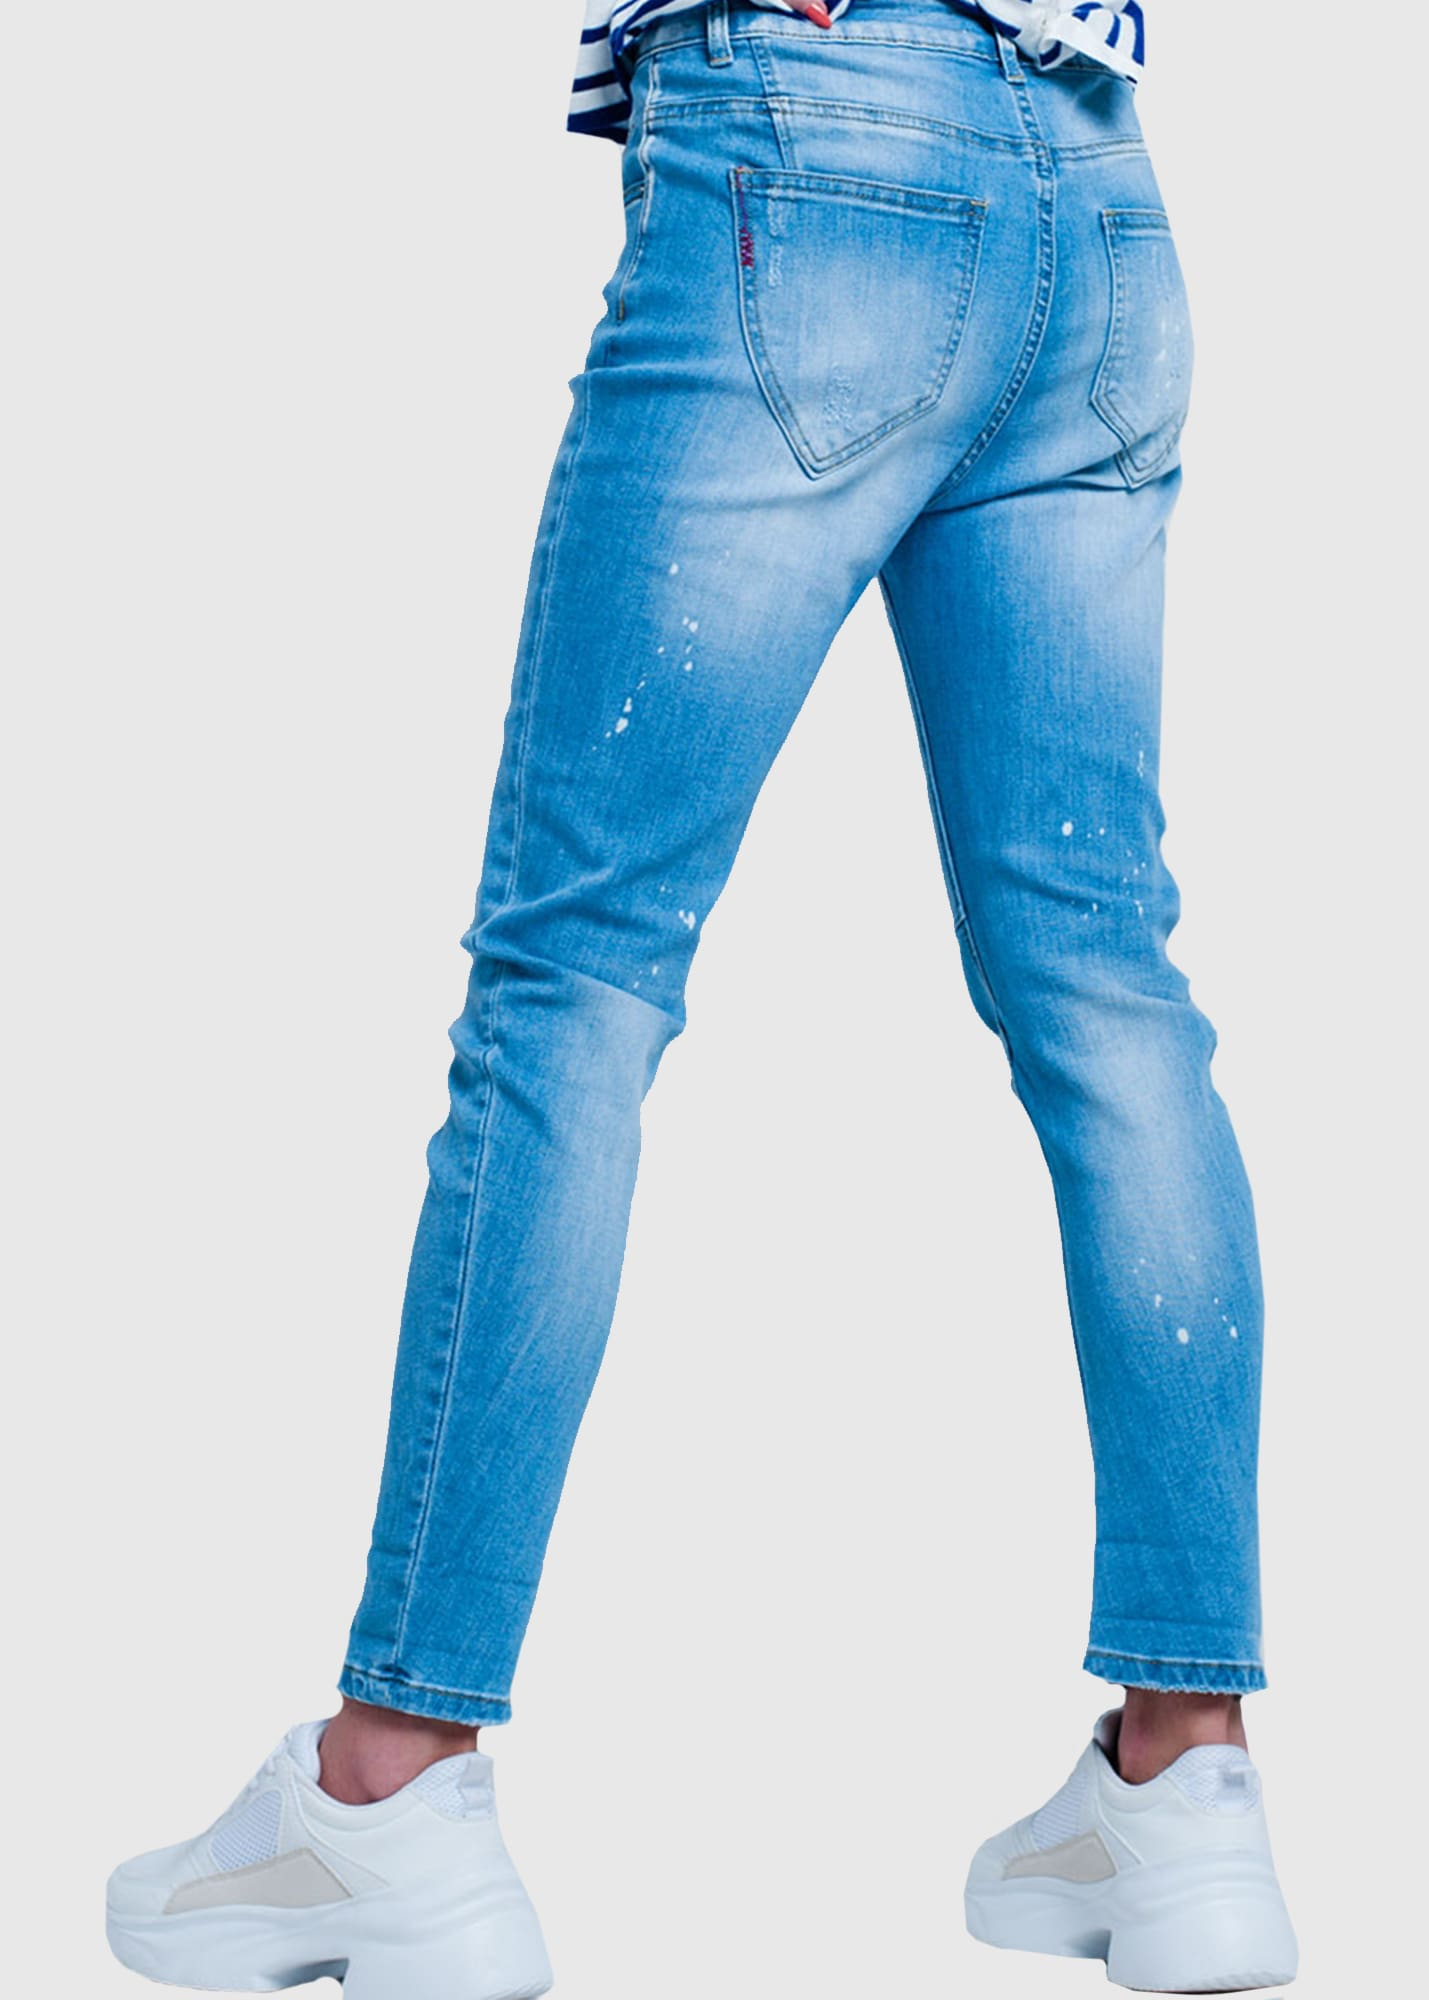 Photo №1 Slim Fit women's distressed jeans